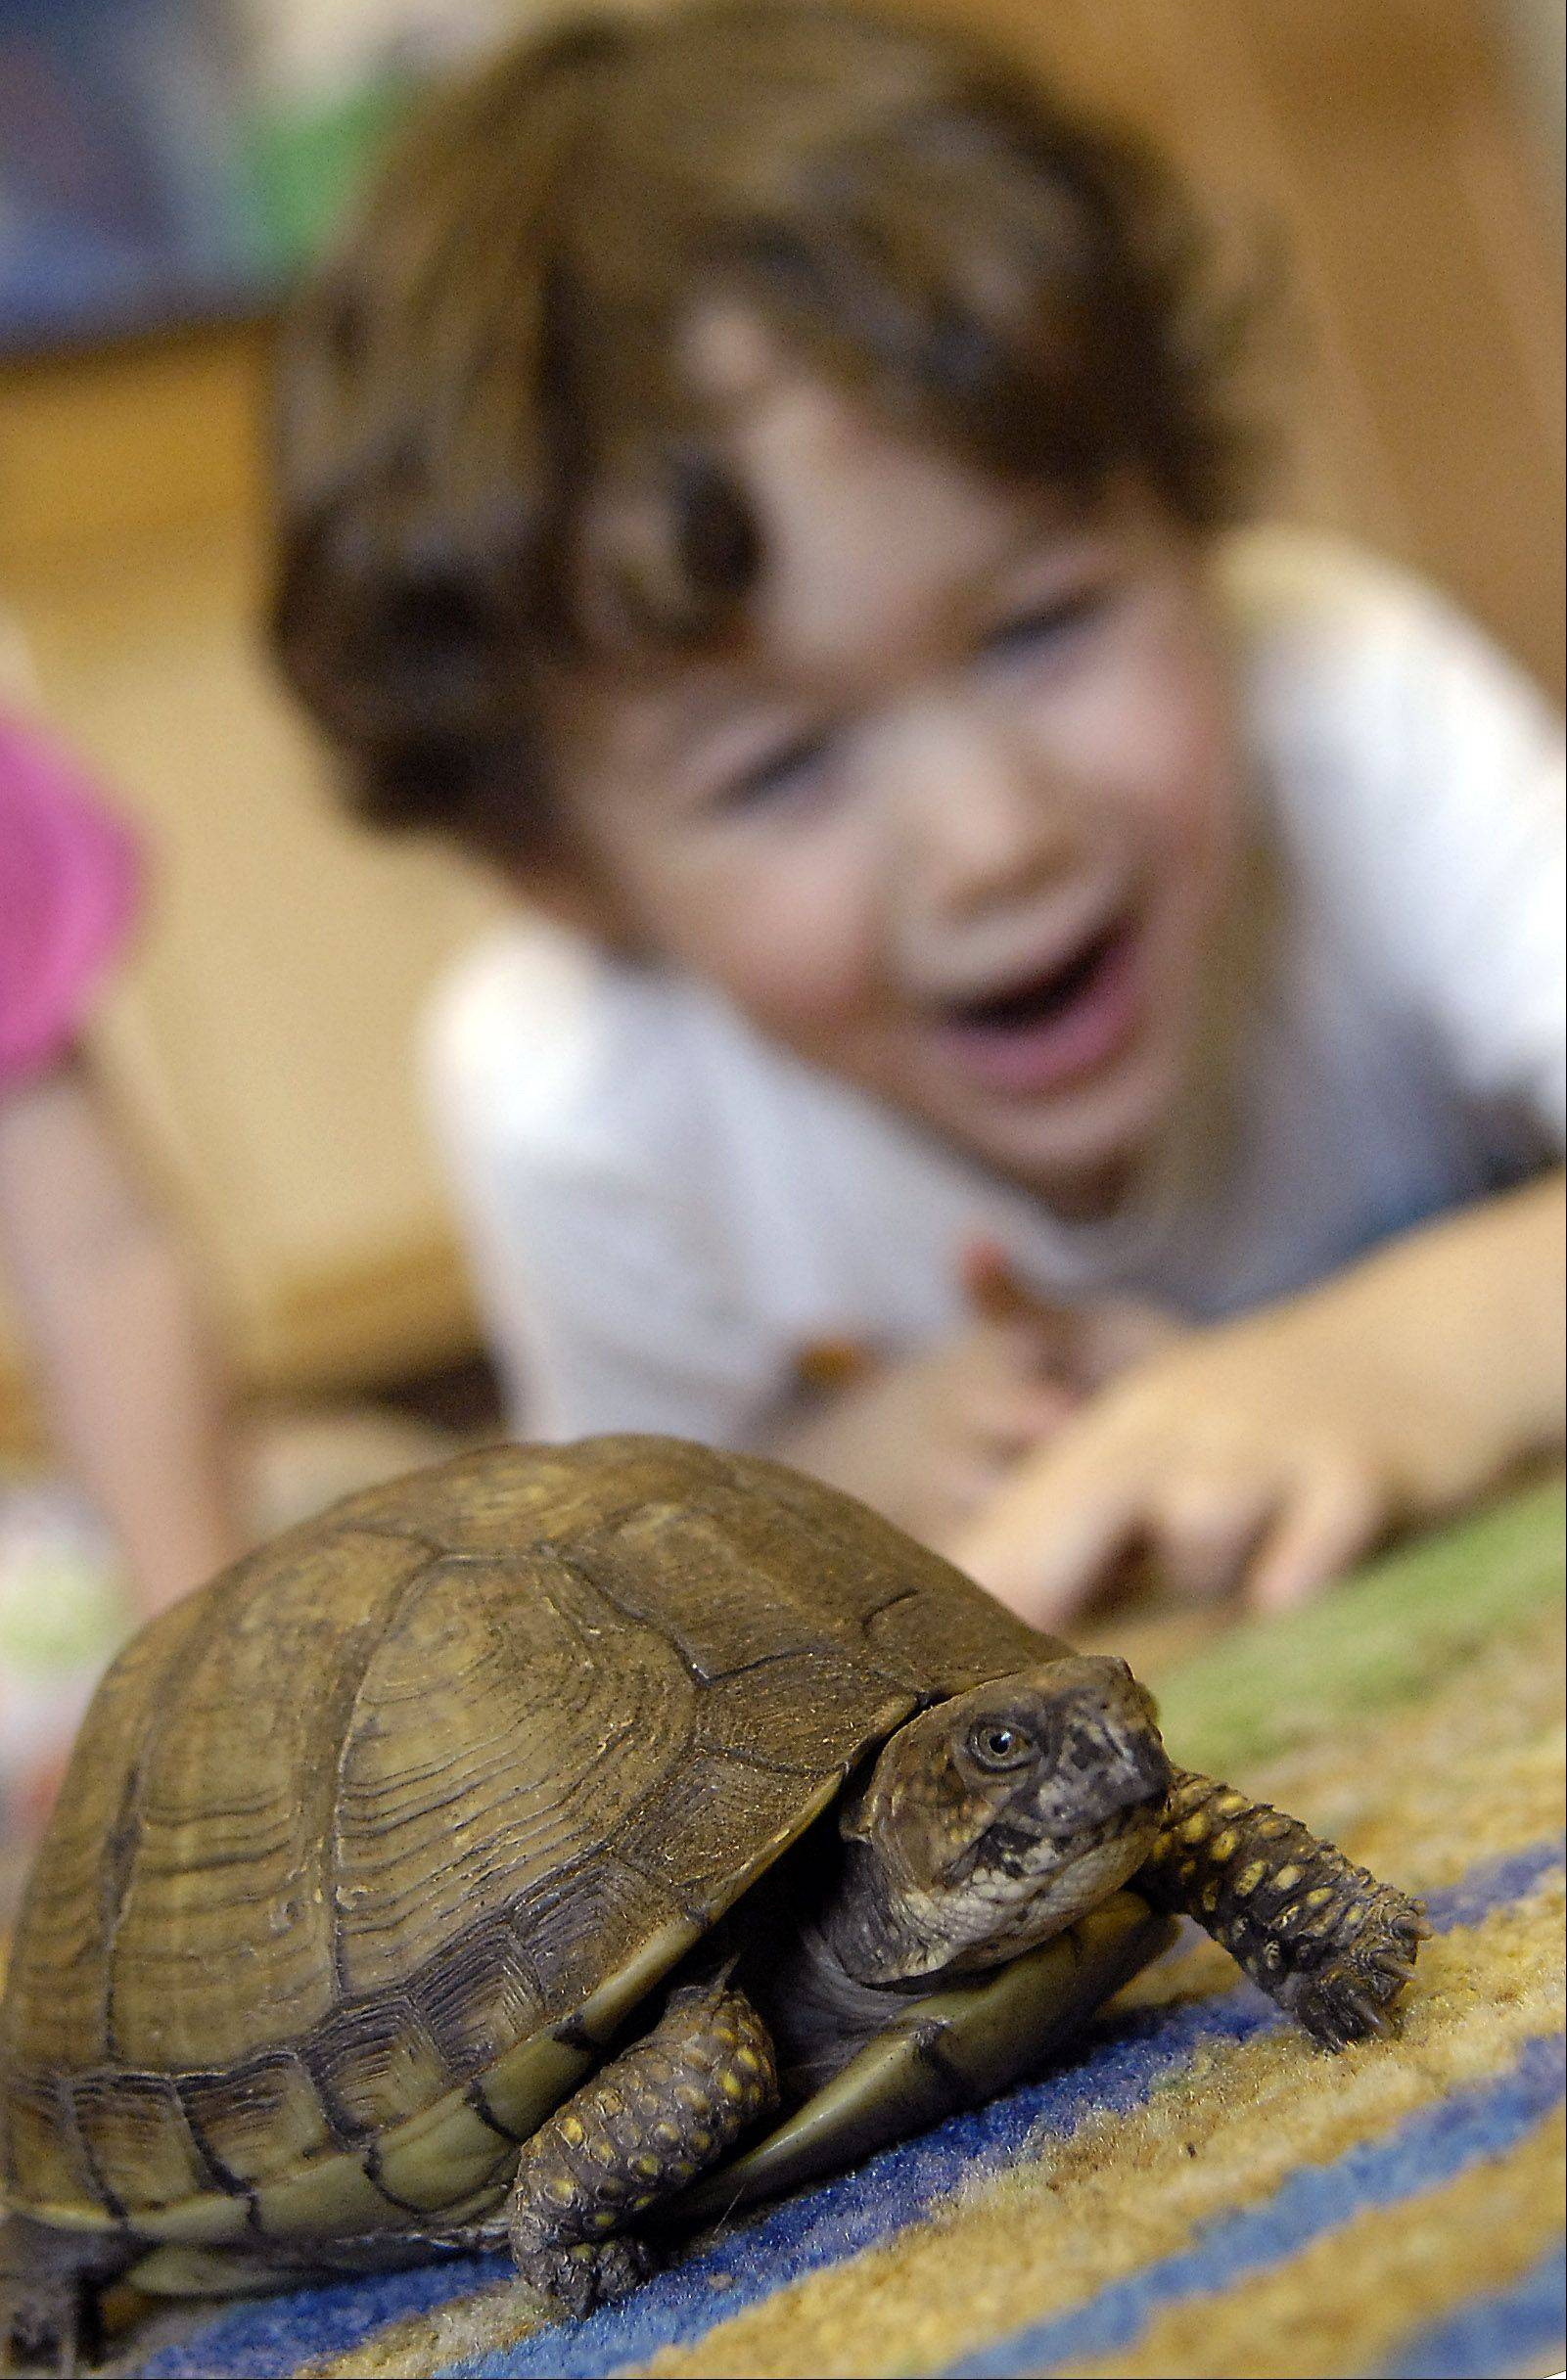 Three-year-old Sam Shaw of St. Charles is all smiles as he watches a box turtle toddle across the floor at Hickory Knolls Discovery Center in St. Charles. In the wild, box turtles like this one assist in the spread of the May-apple plant when they eat the berries and disseminate seeds that pass through their digestive tracts.